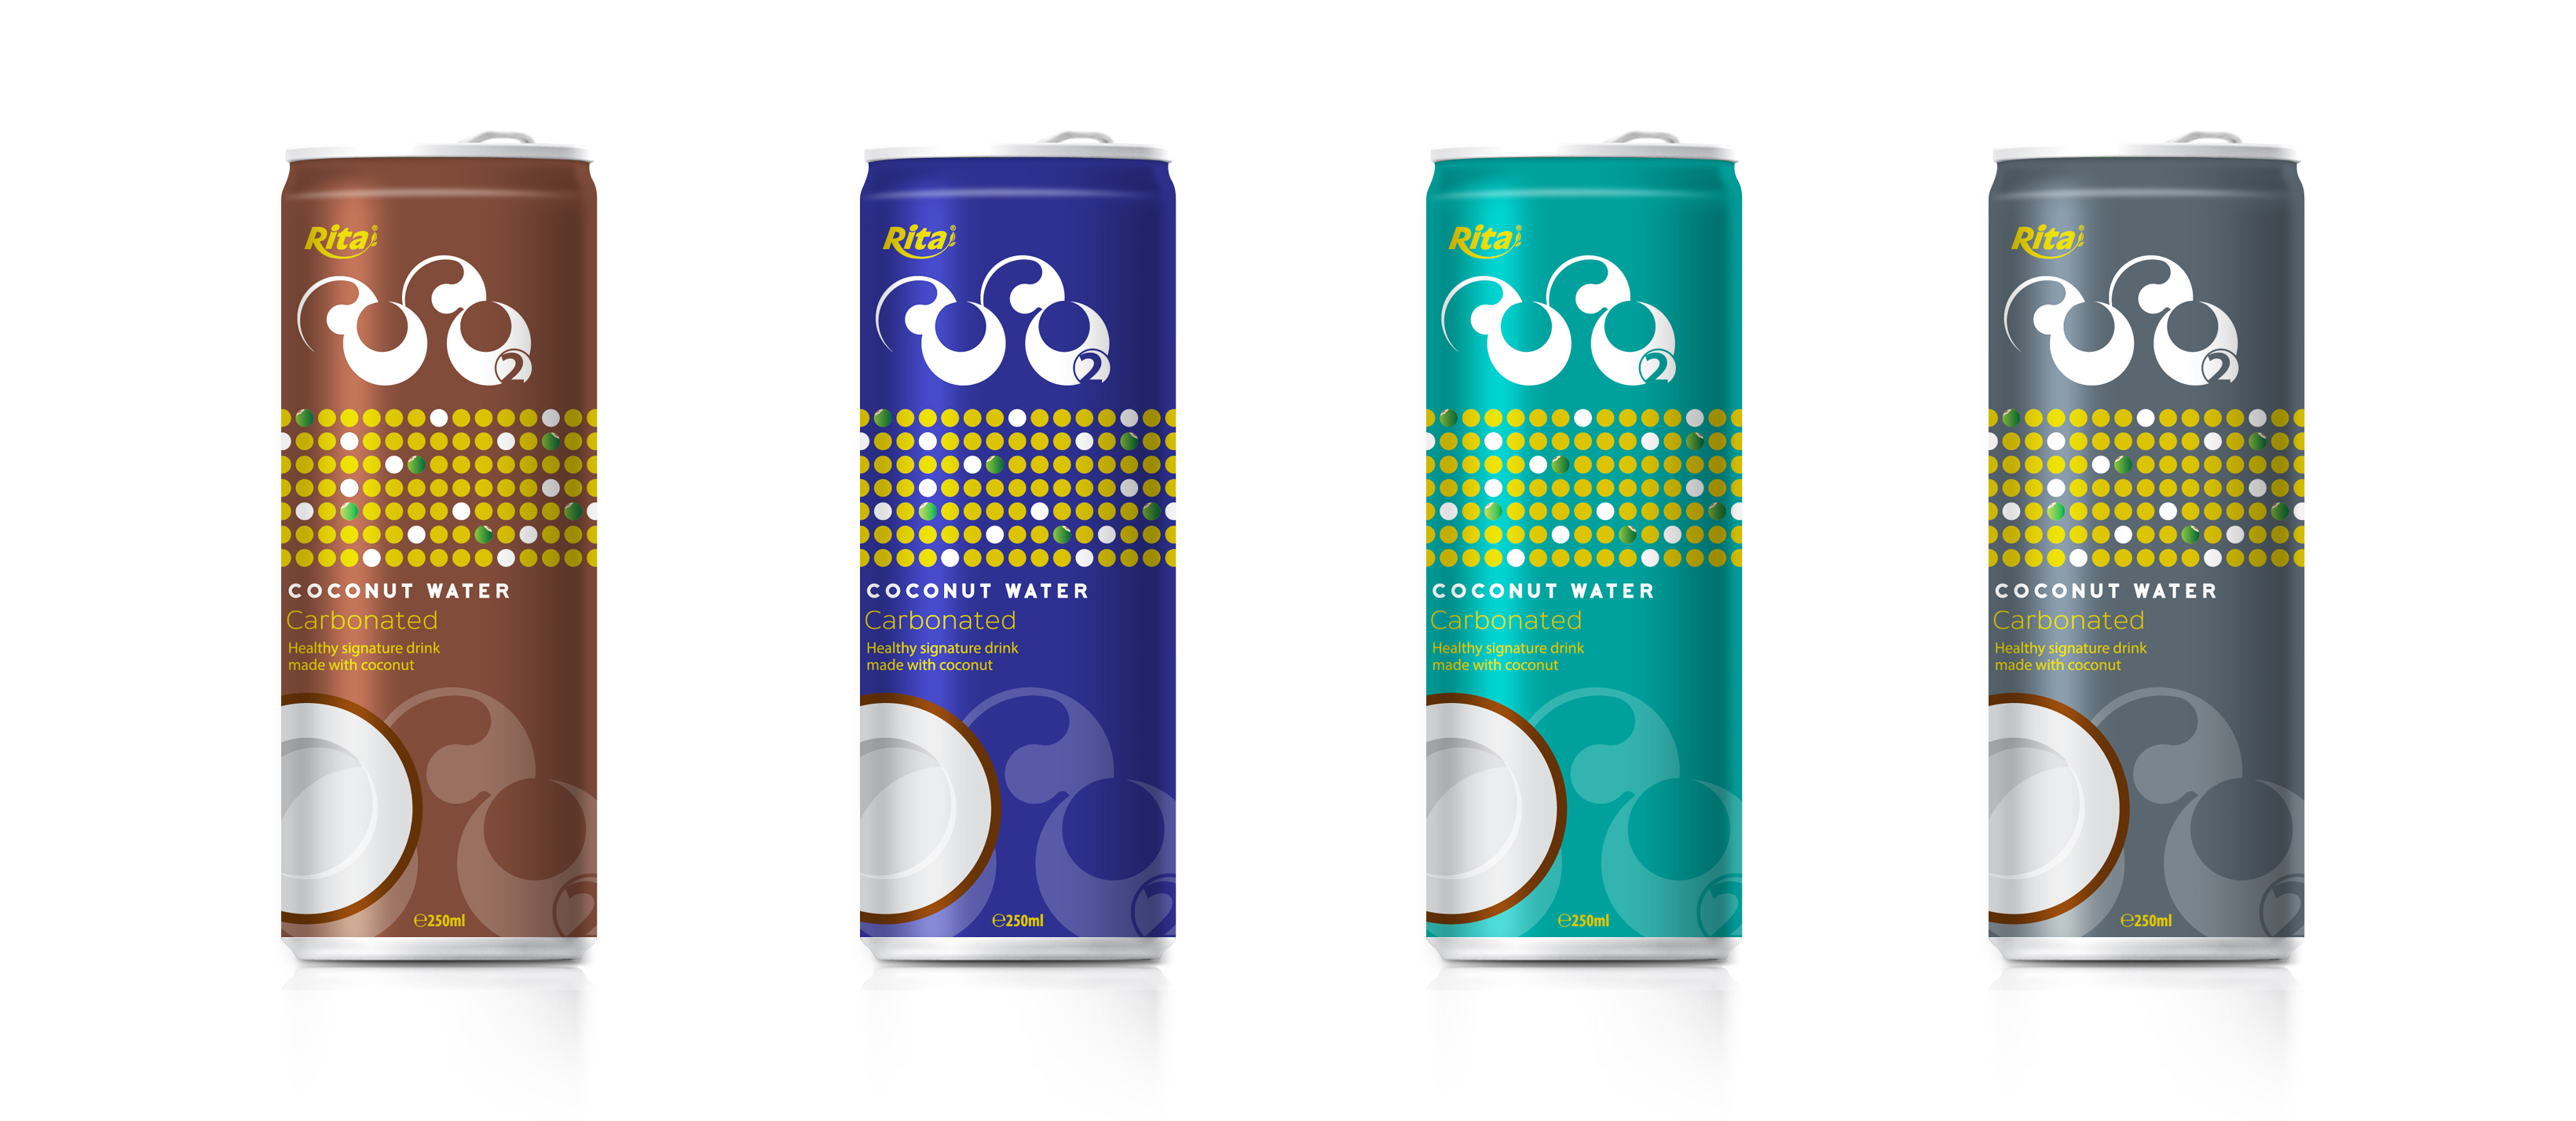 Carbonated coconut water 330 ml Canned Brand